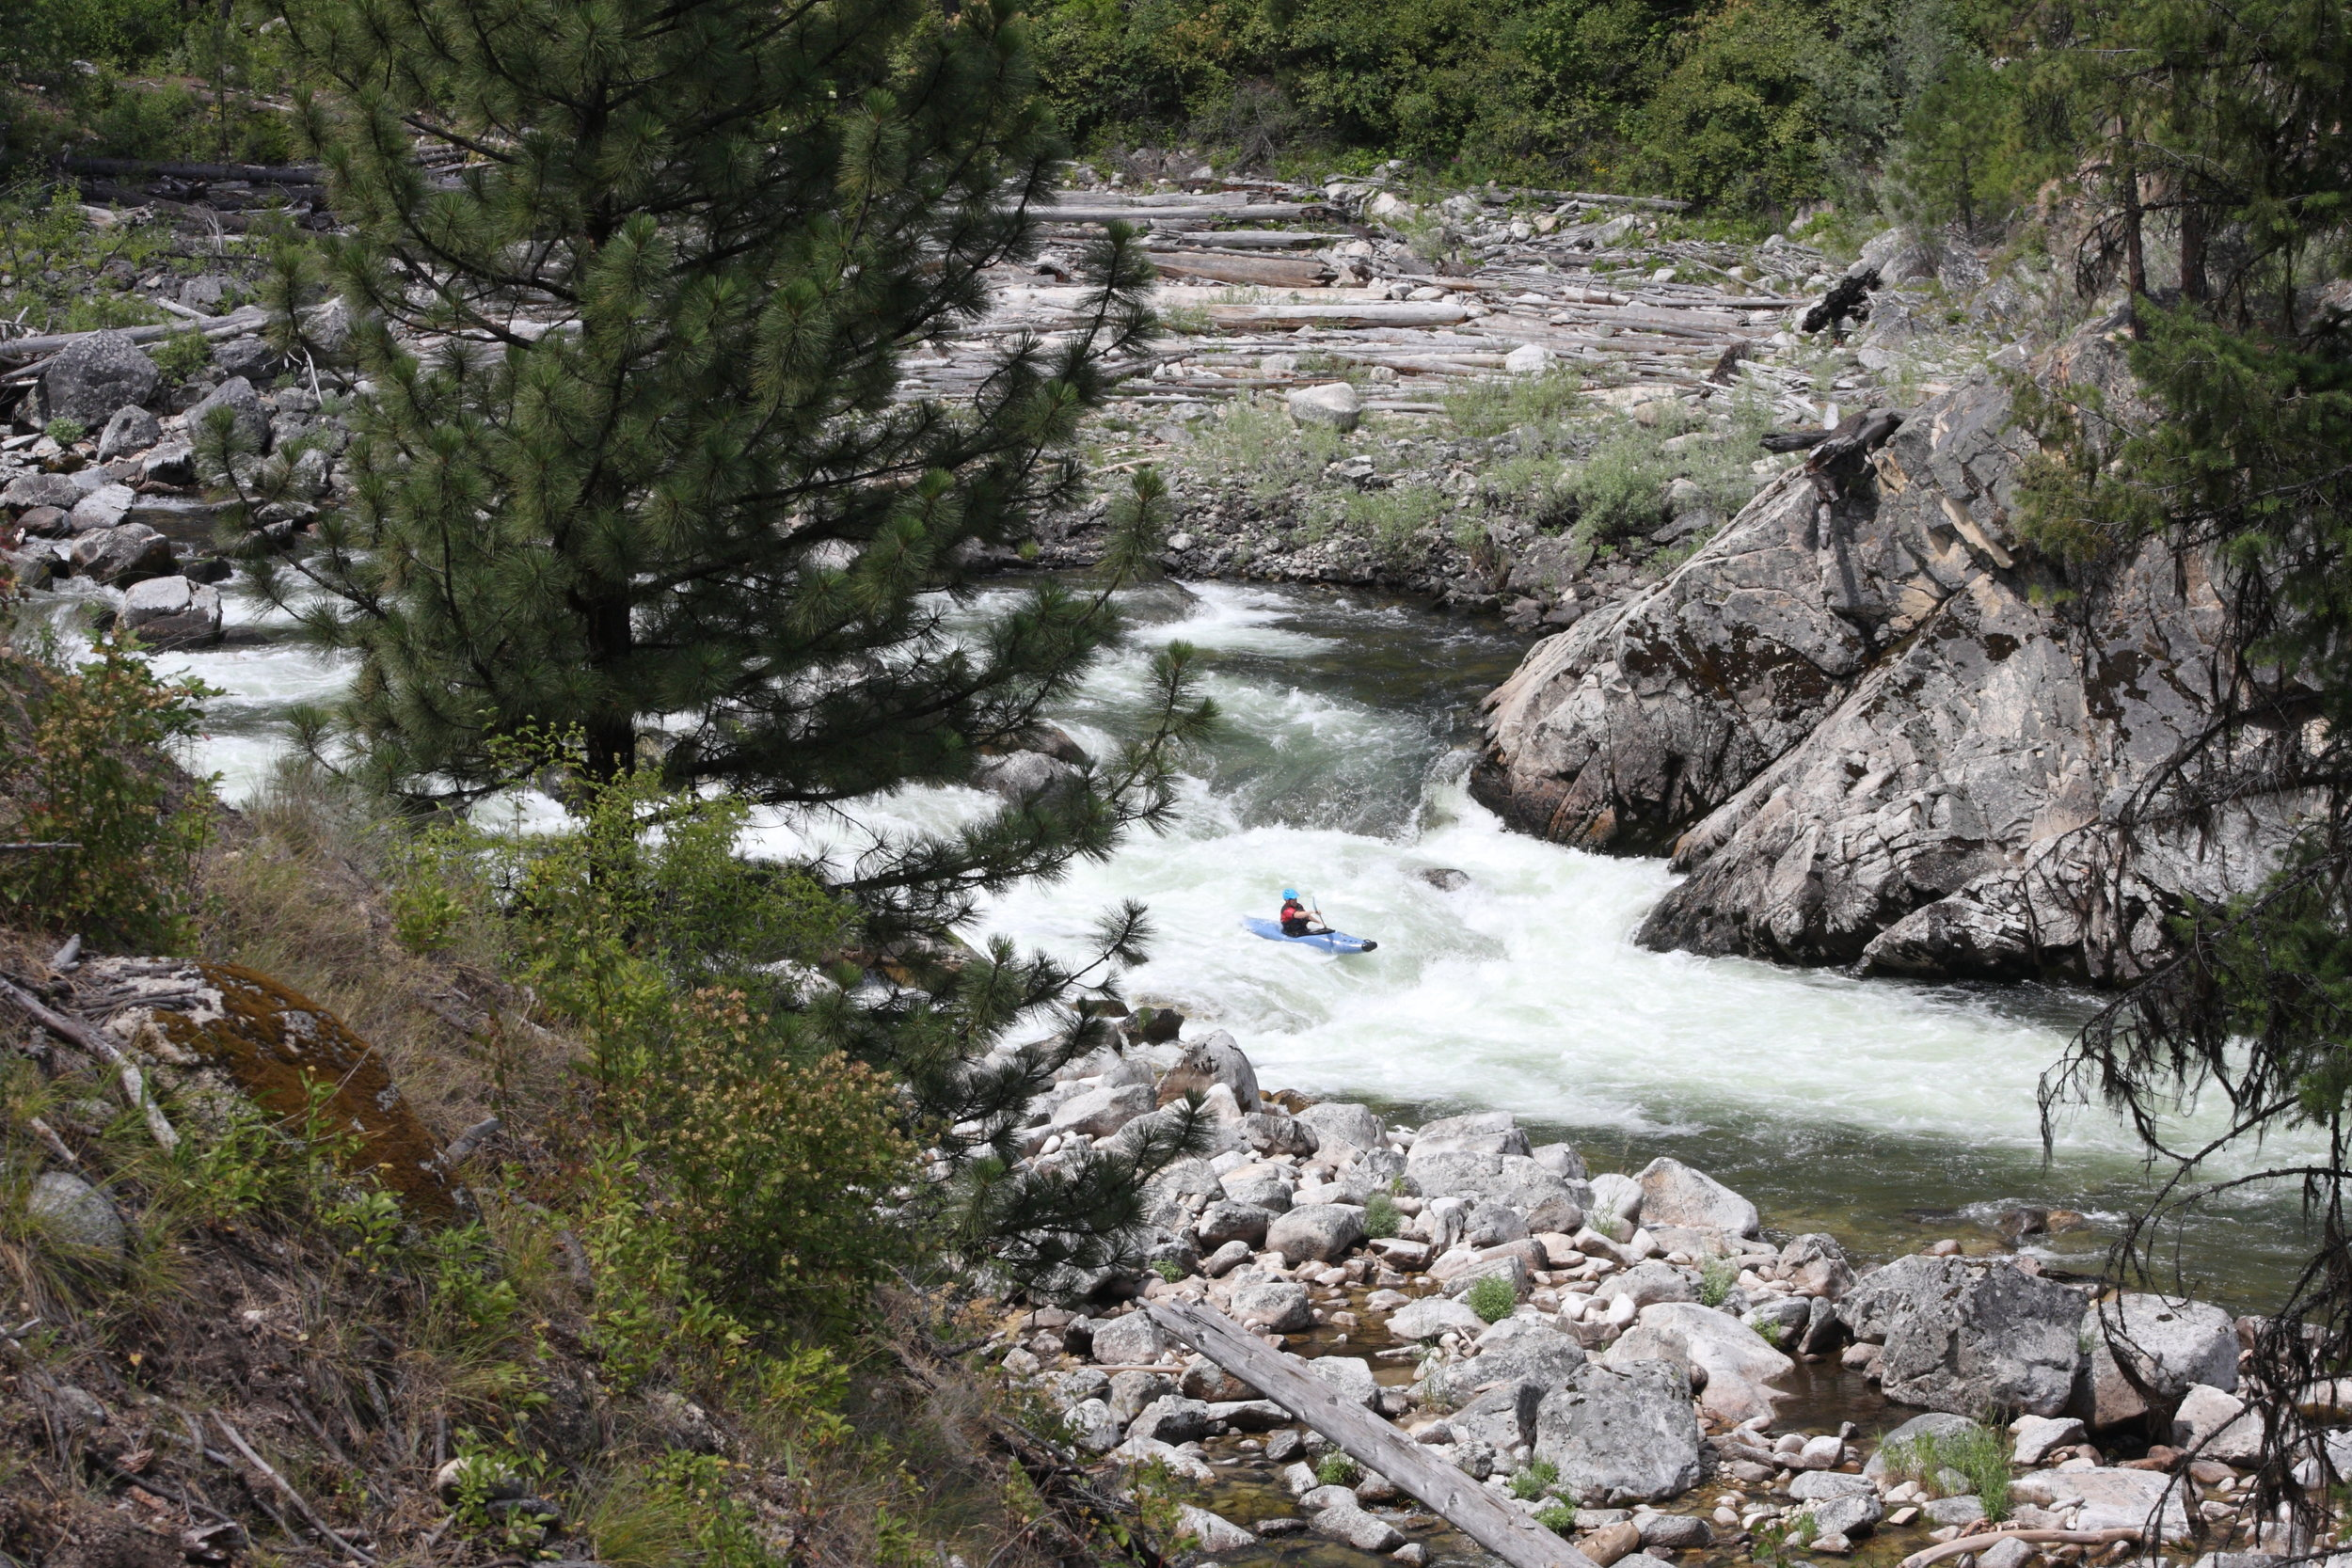 Remote, secluded boating and paddling on the South Fork of the Salmon River